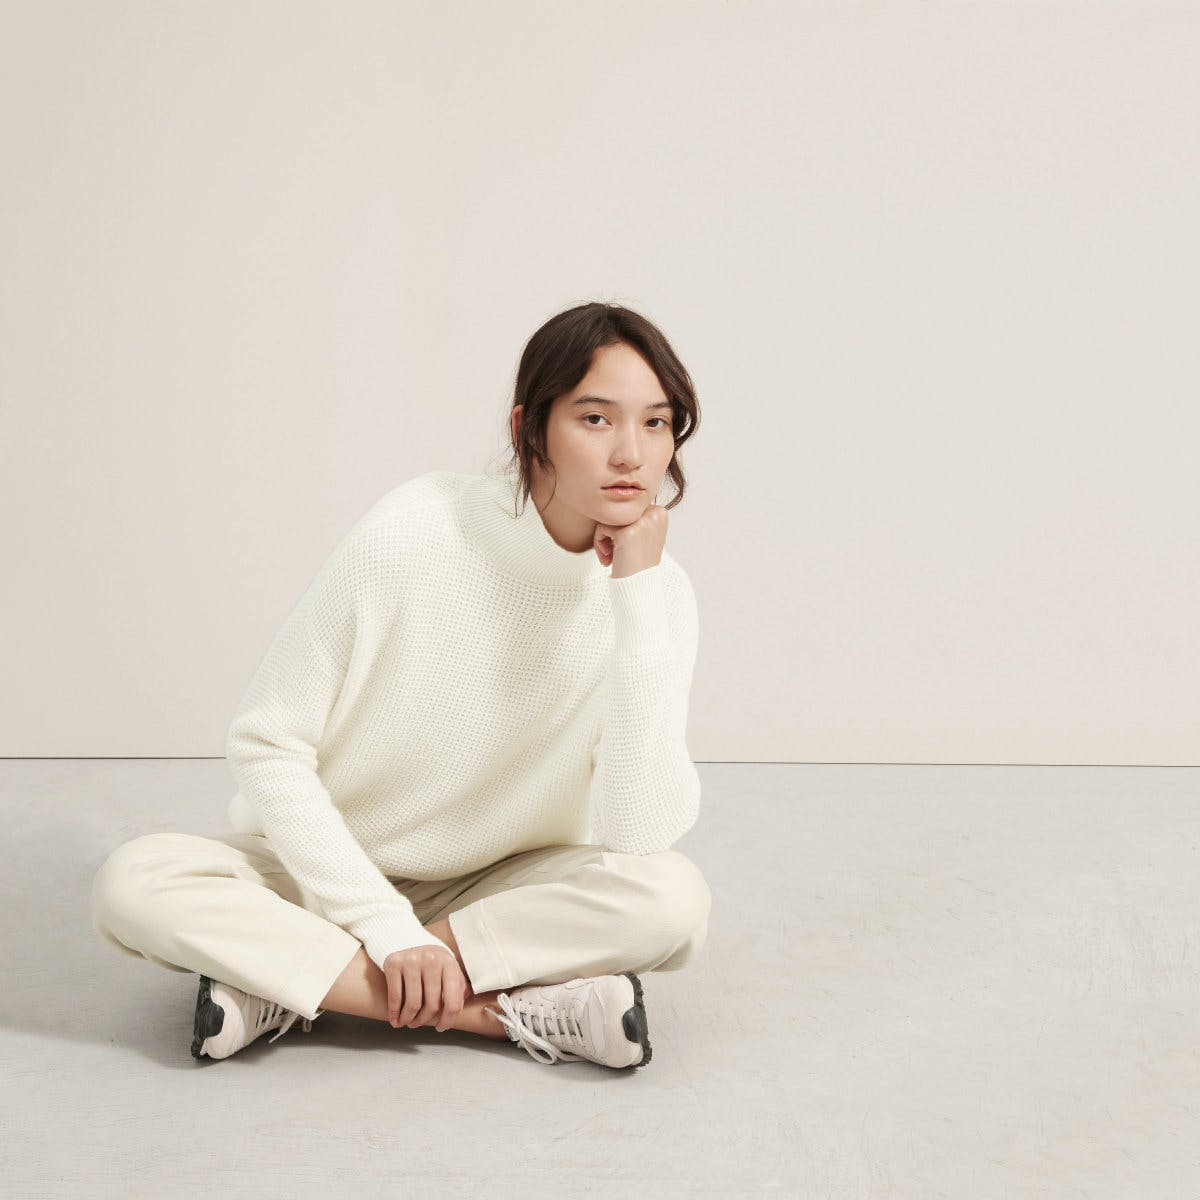 everlane, everlane knit, waffle knit sweater, knit sweater, trutleneck, sweater, white knit sweater, denimblog, denim blog